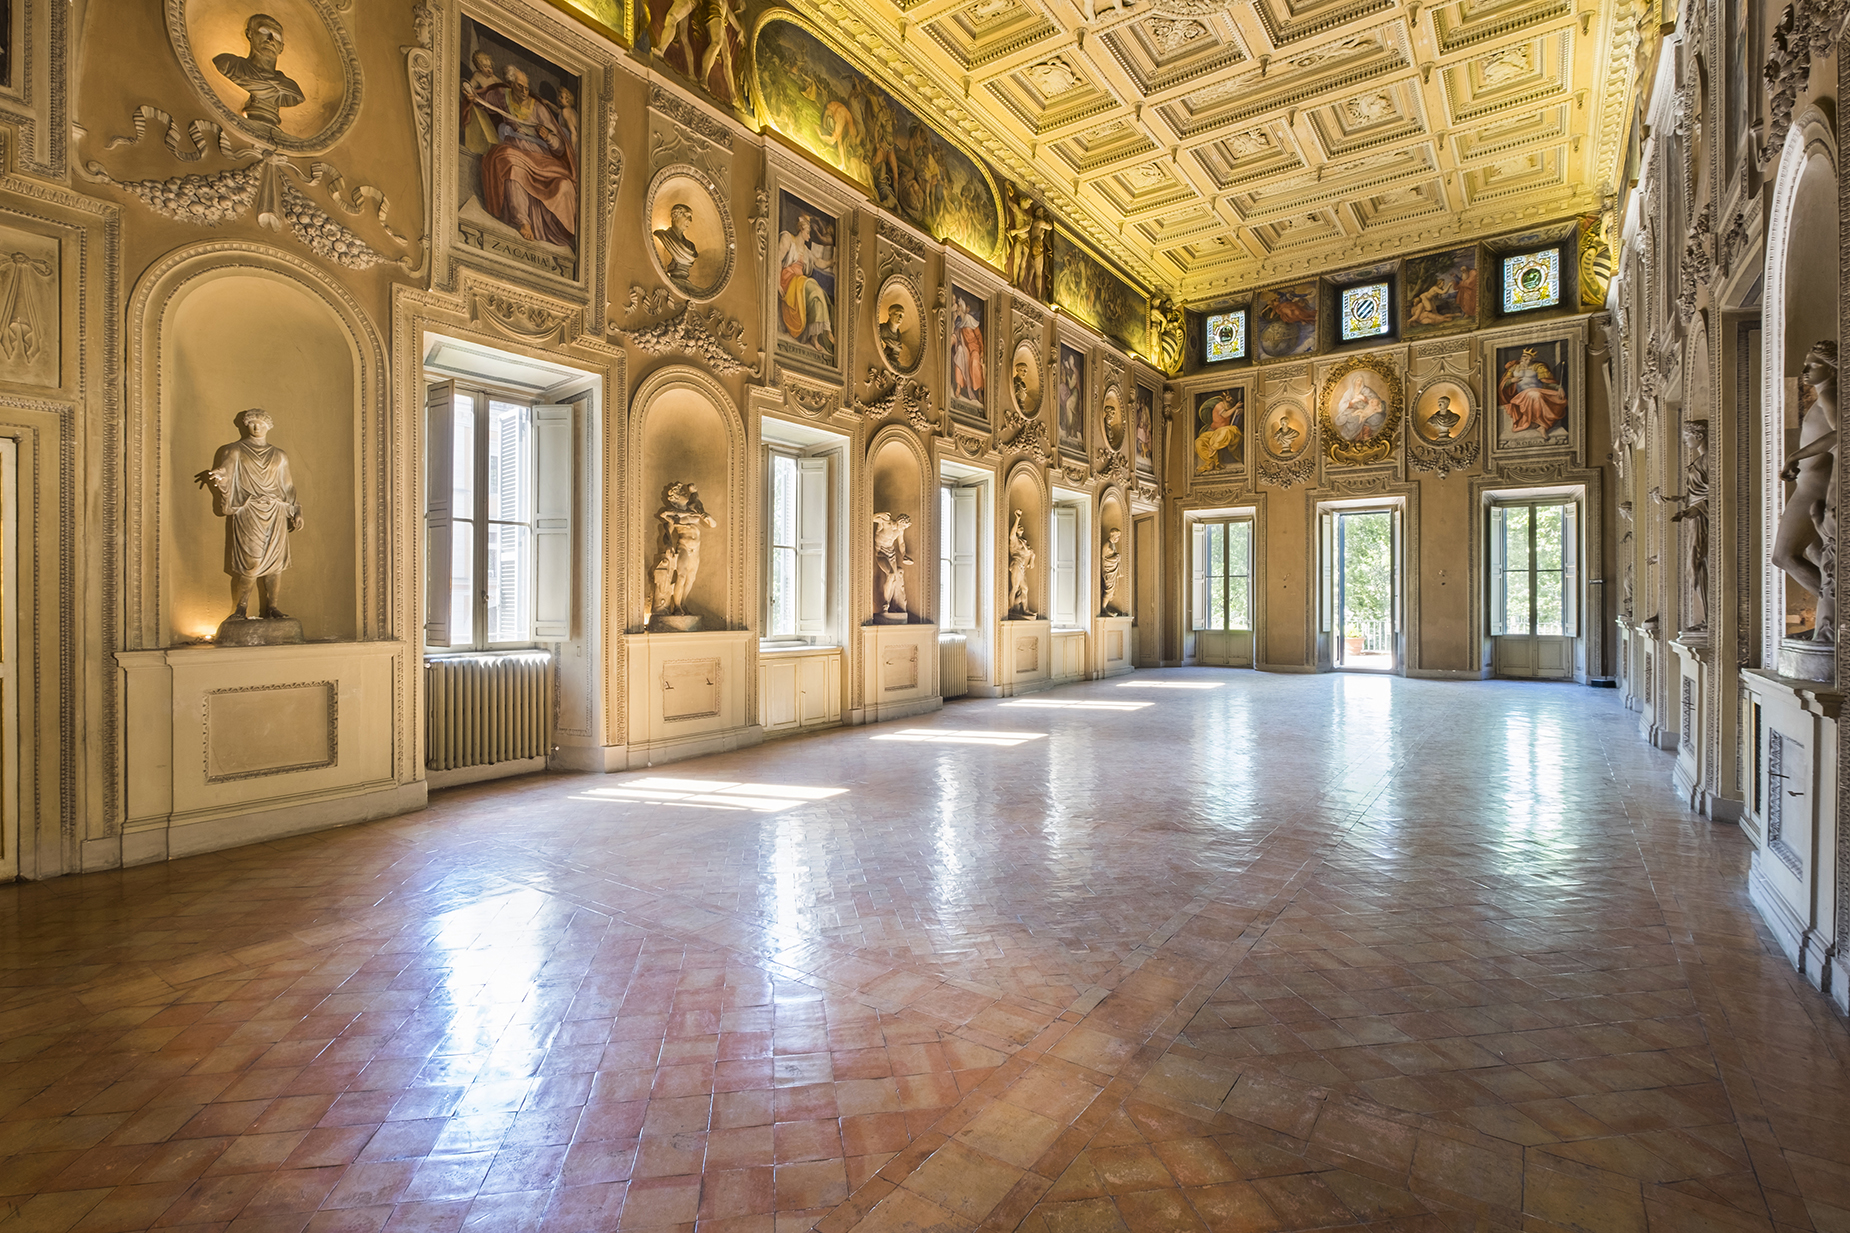 Palazzo Sacchetti, a pearl of the late reinassance in the heart of Rome